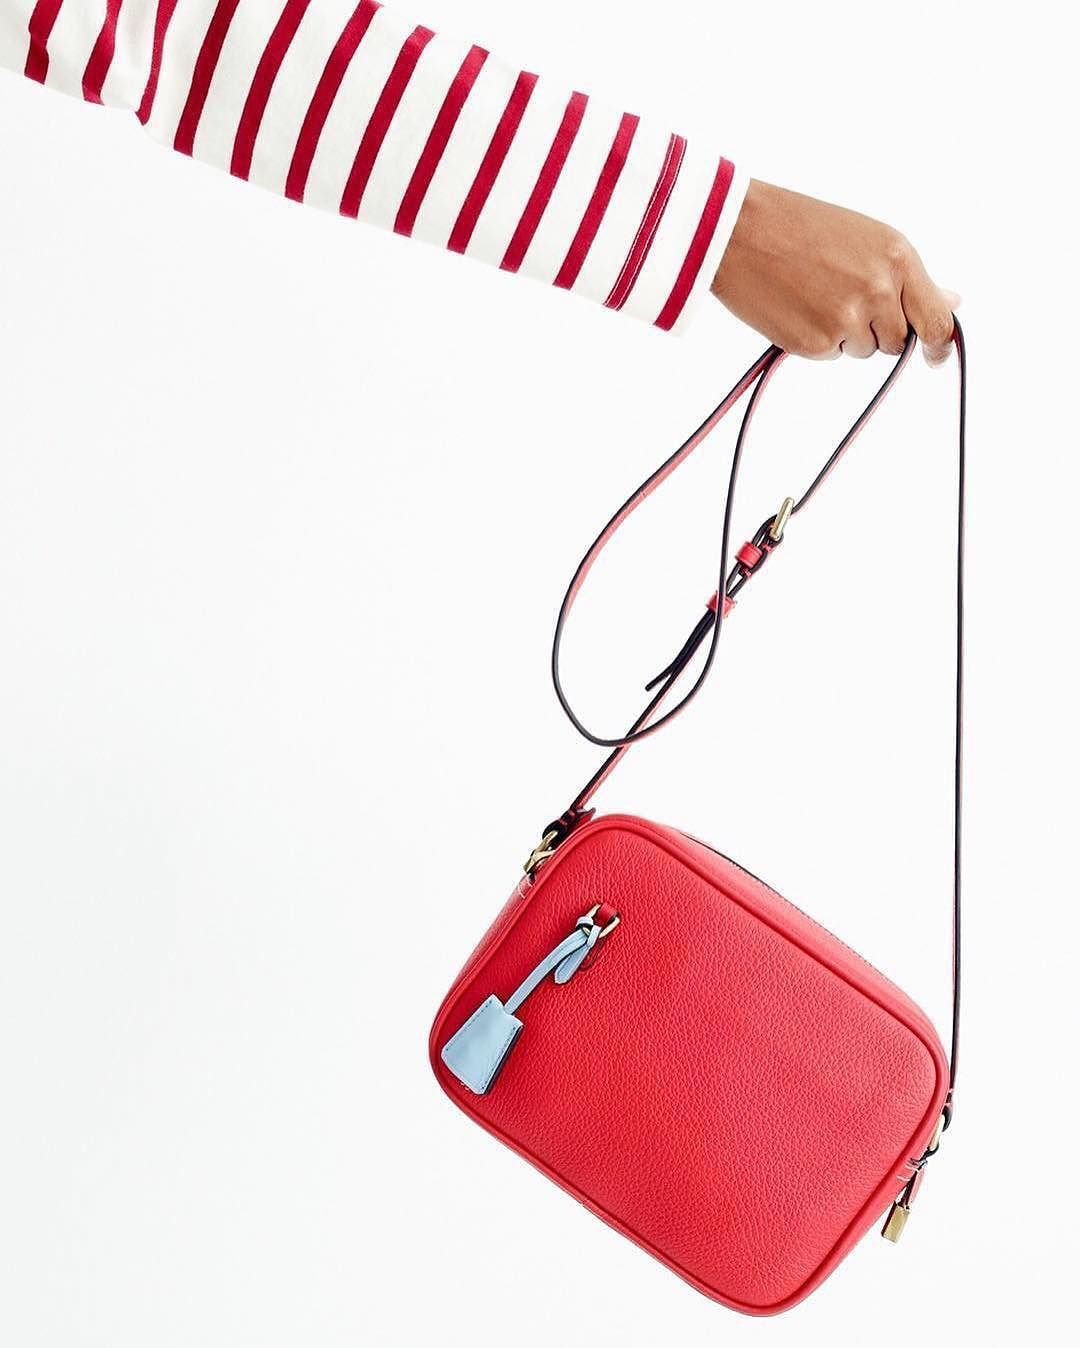 What S Your Purse Onality Introducing The Signet Bag In 10 Colors With